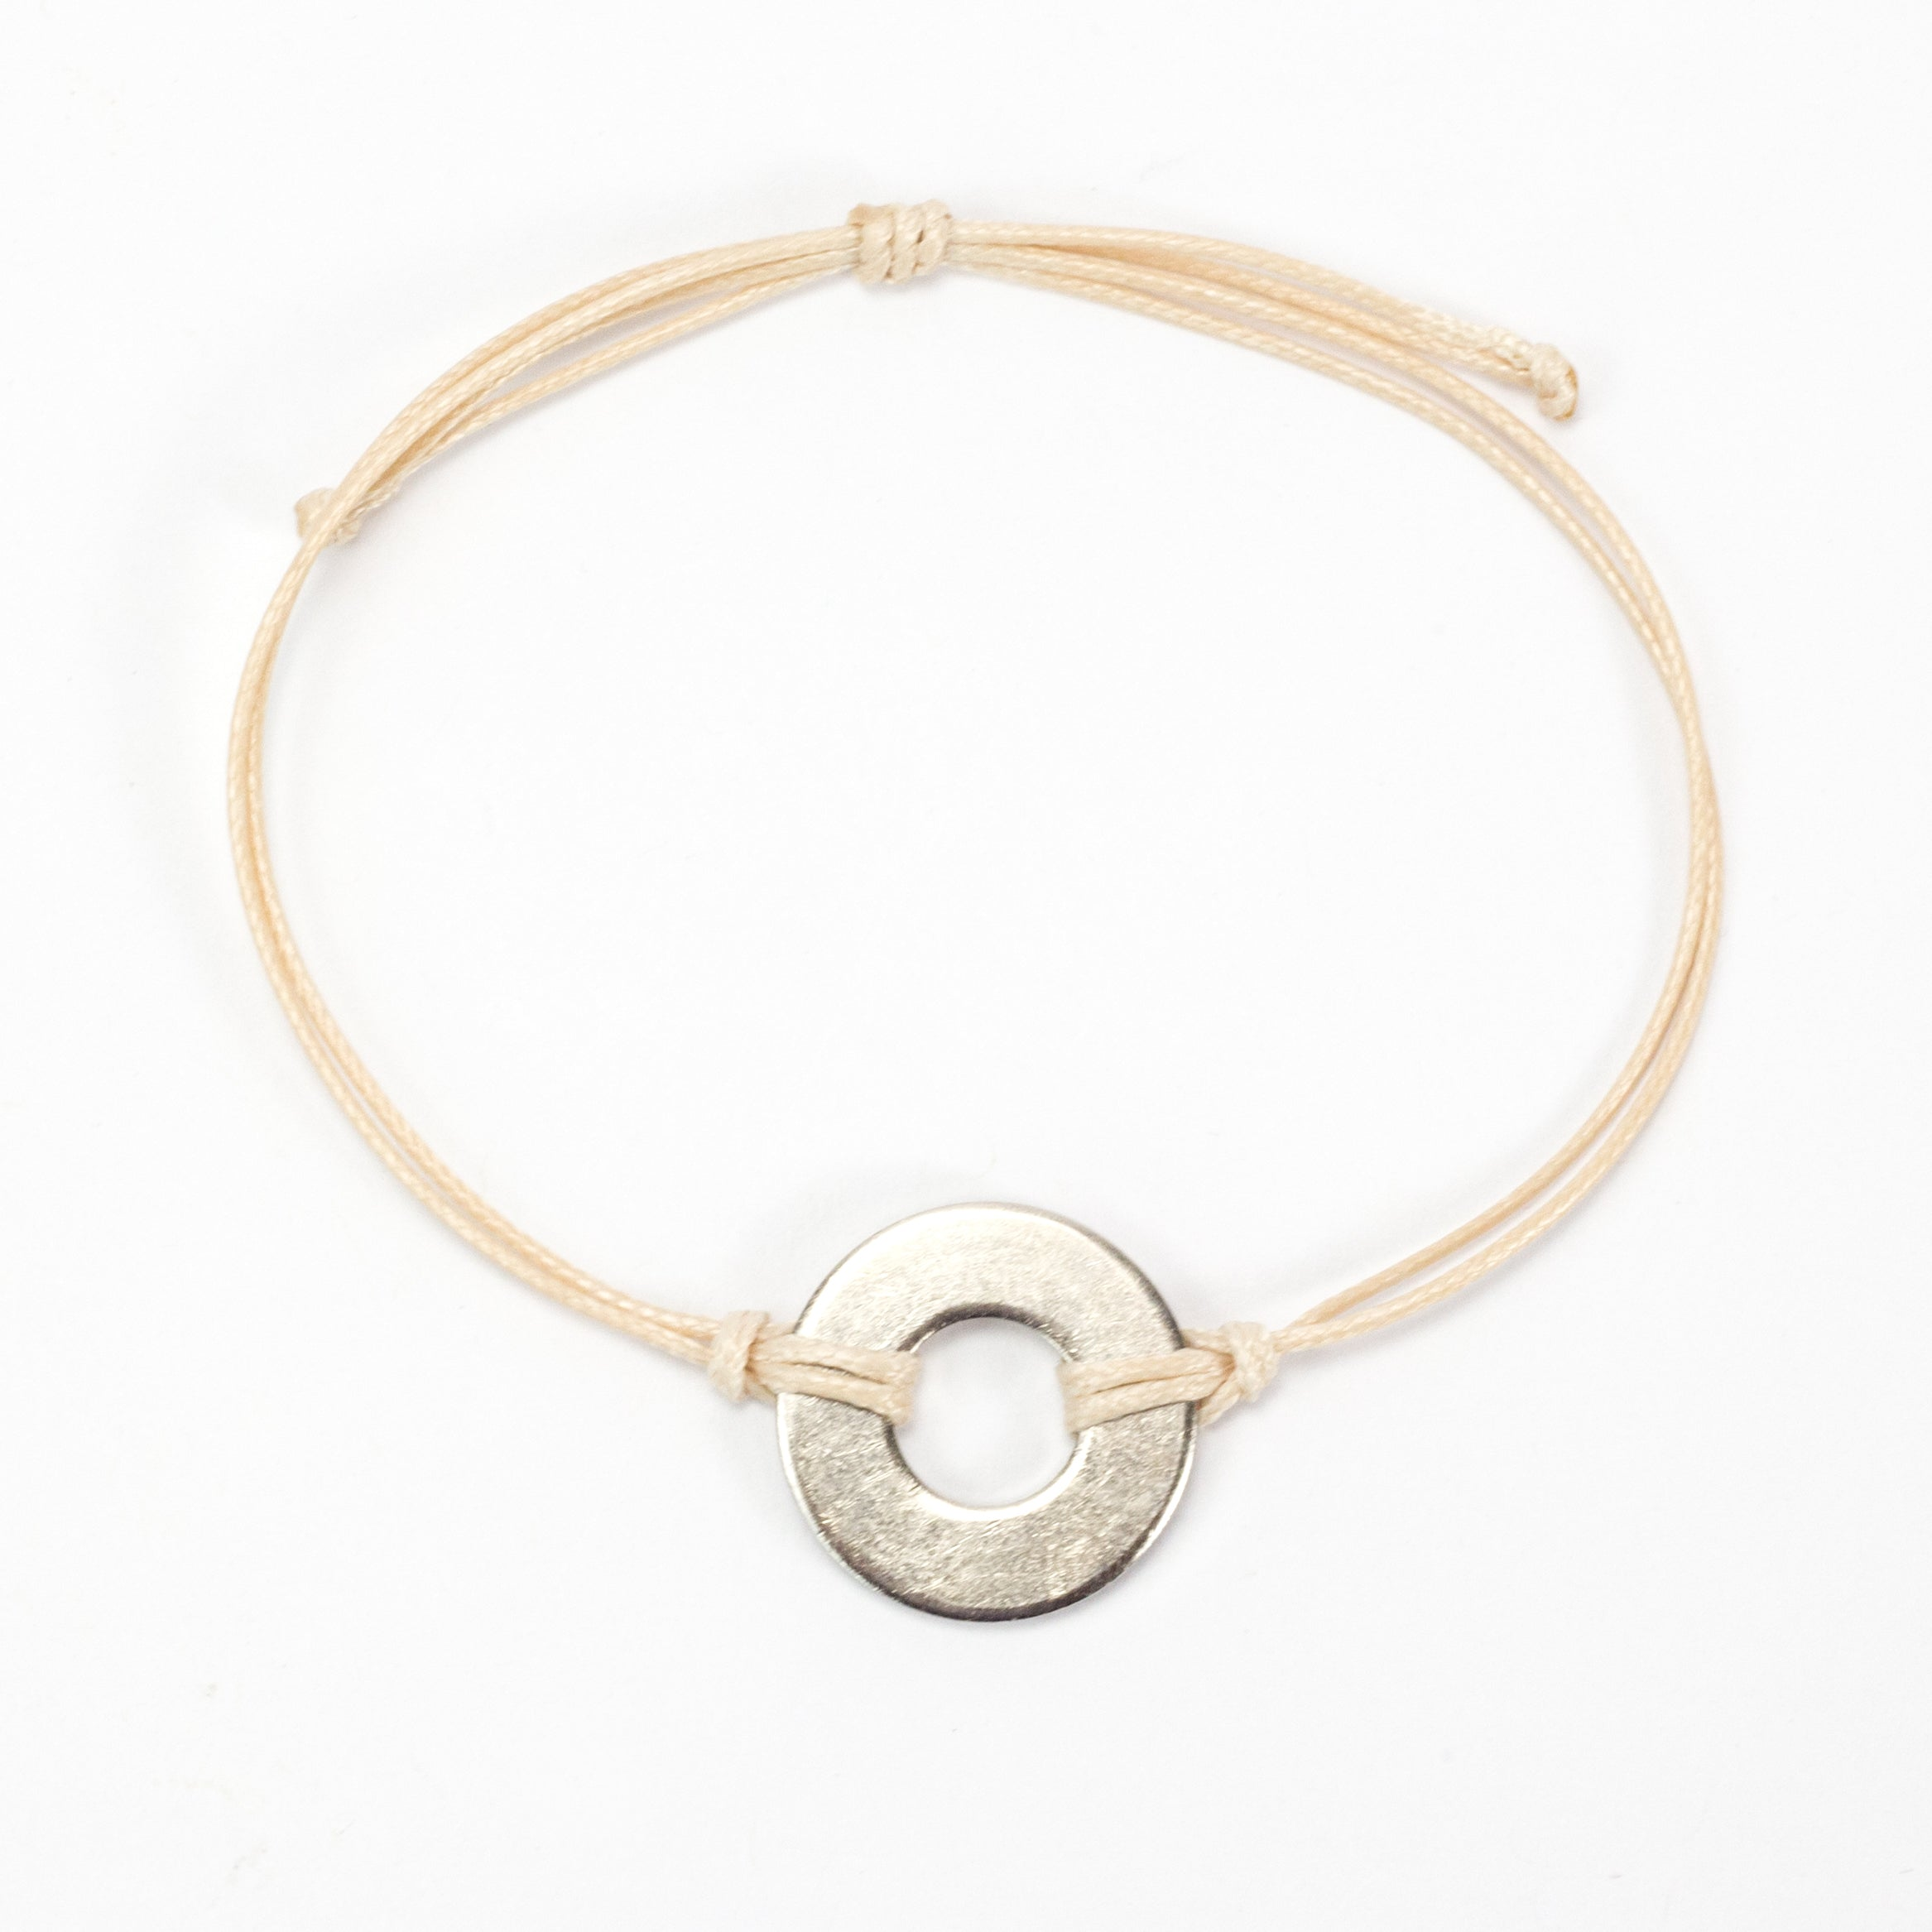 MyIntent Refill Classic Bracelet Cream String with Nickel token